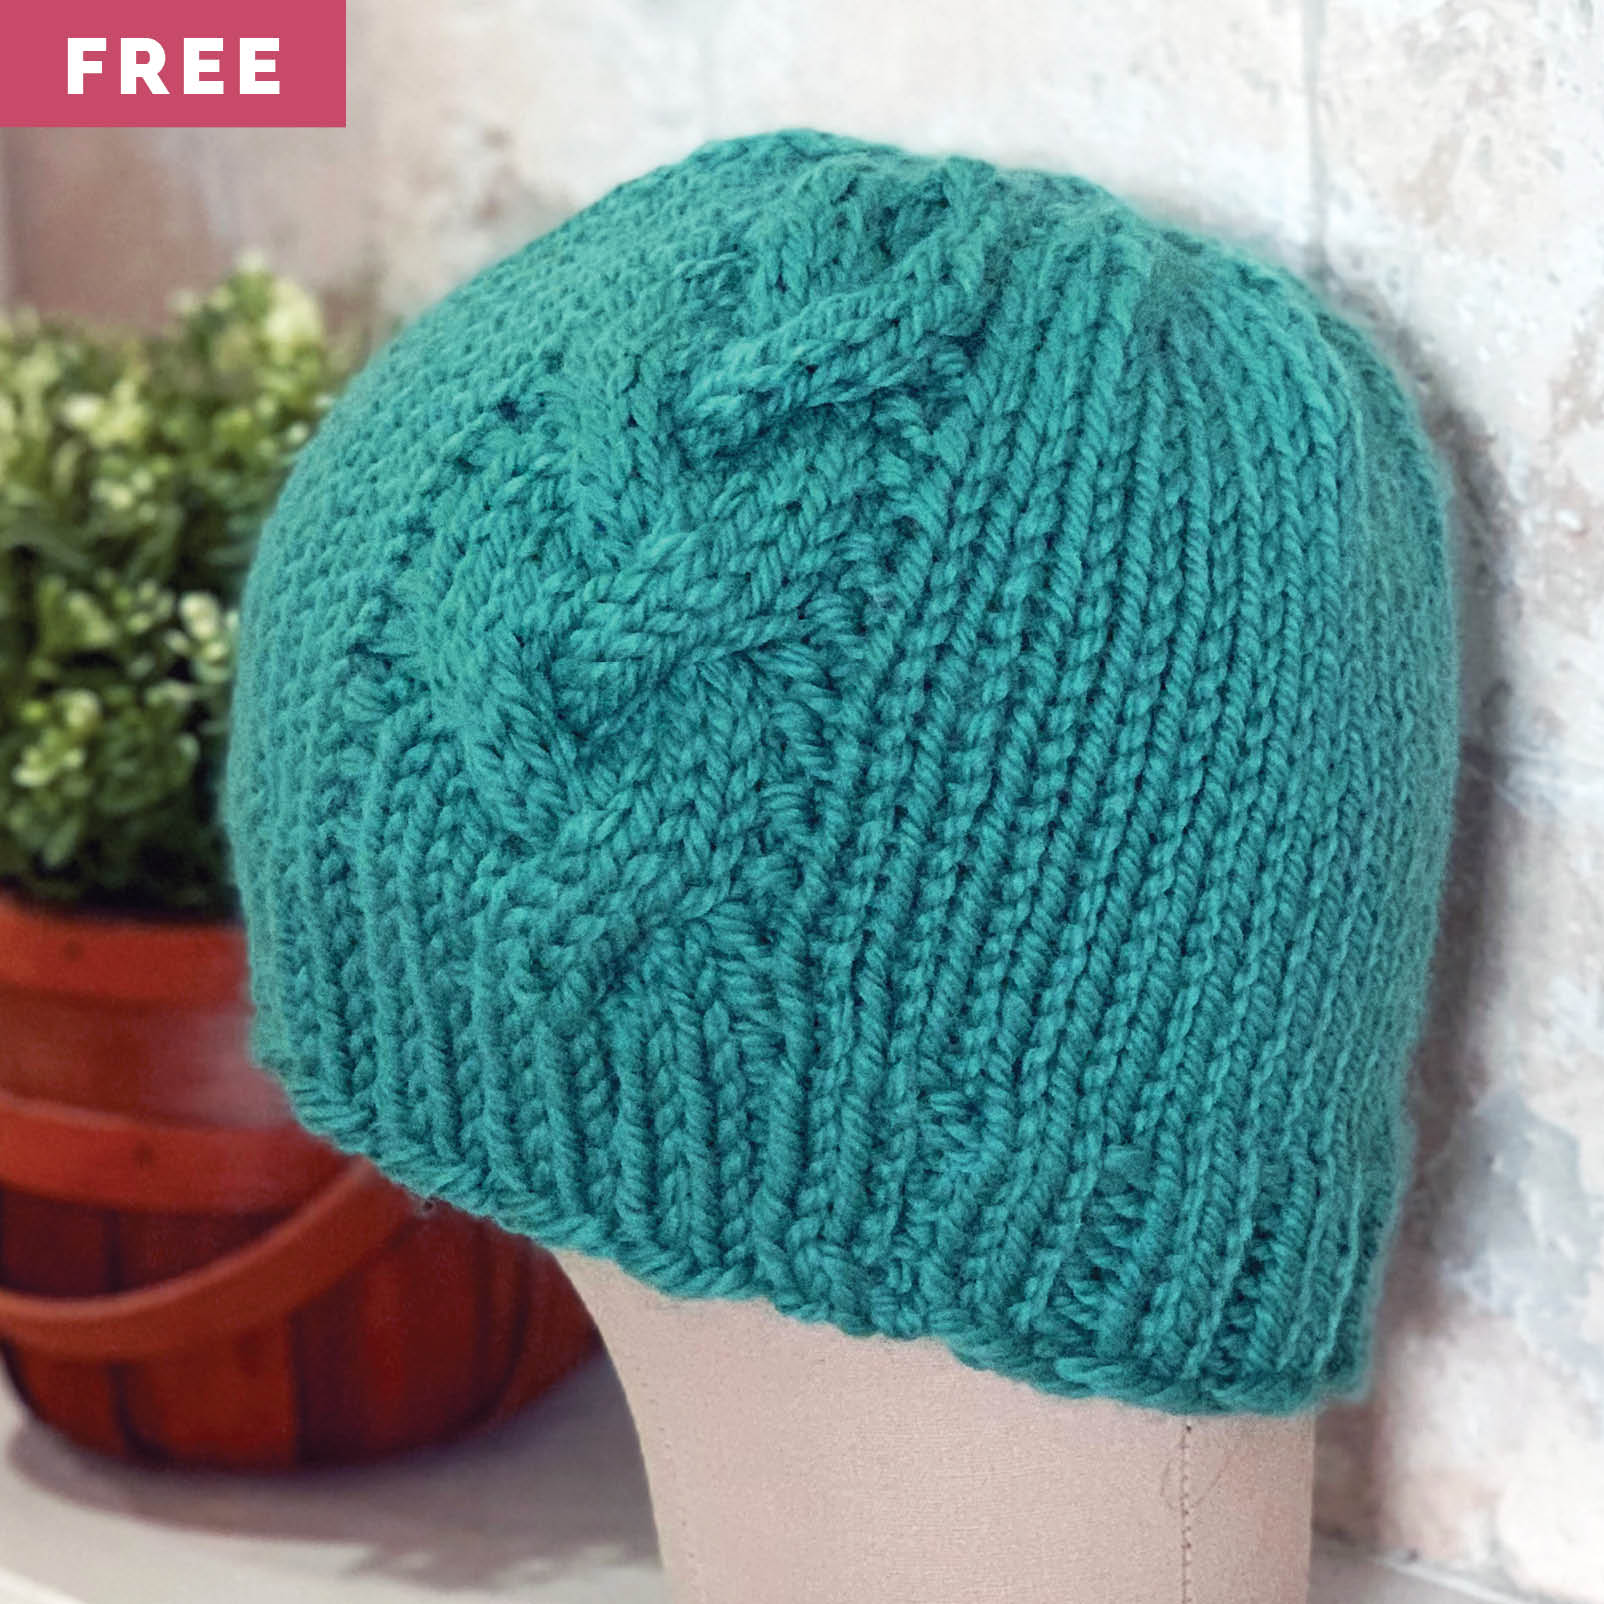 Free Knitting Pattern - Braided Cable Beanie